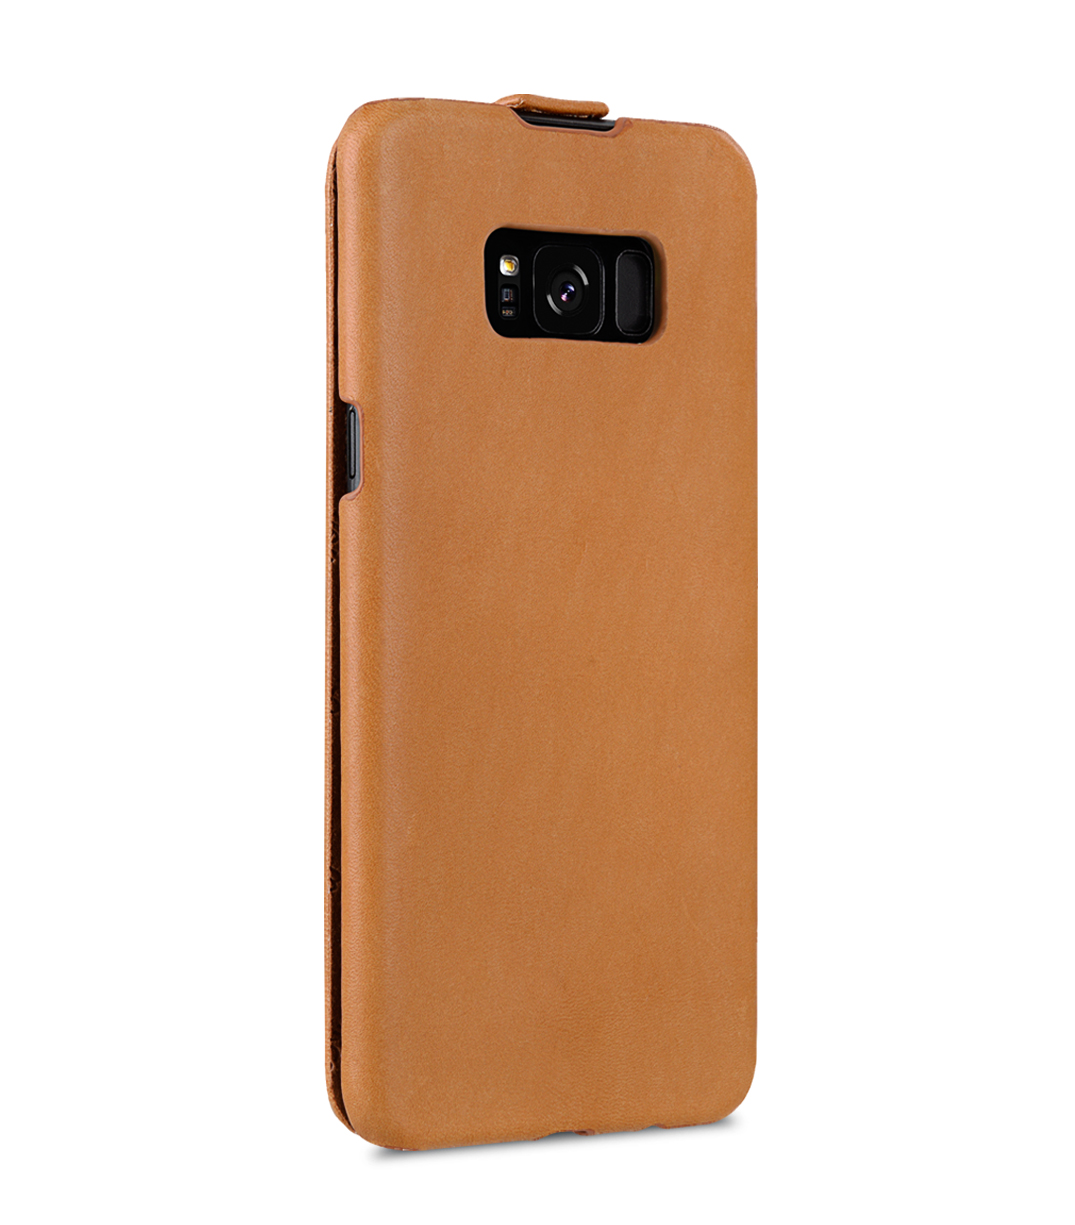 Melkco Jacka Series Premium Vegetable Leather Case for Samsung Galaxy S8 - Jacka Type ( Brown )